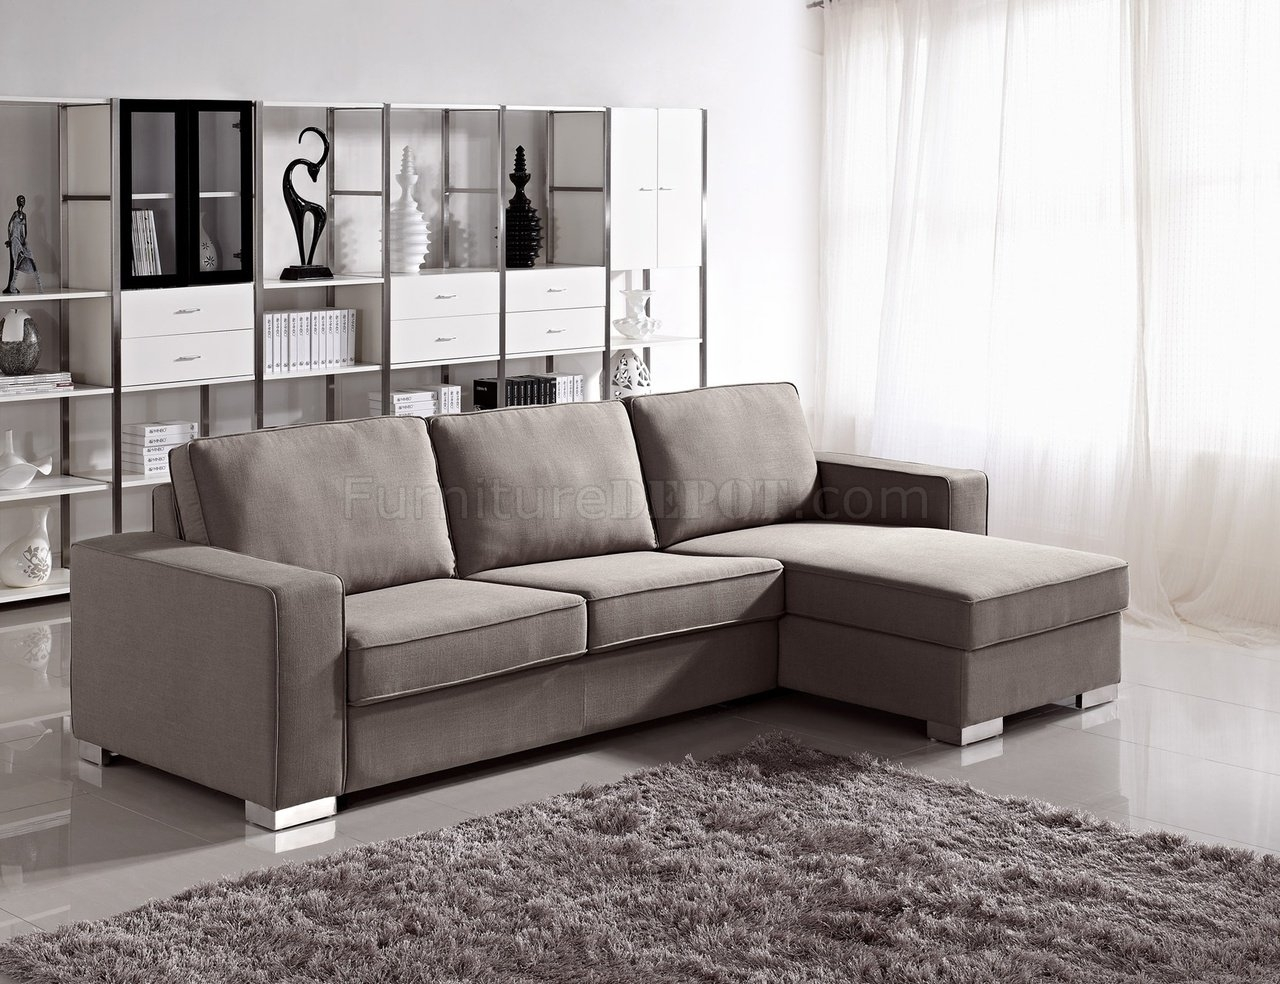 Astonishing Convertible Sectional Sofas 60 About Remodel Eco With Regard To Eco Friendly Sectional Sofa (Image 6 of 15)